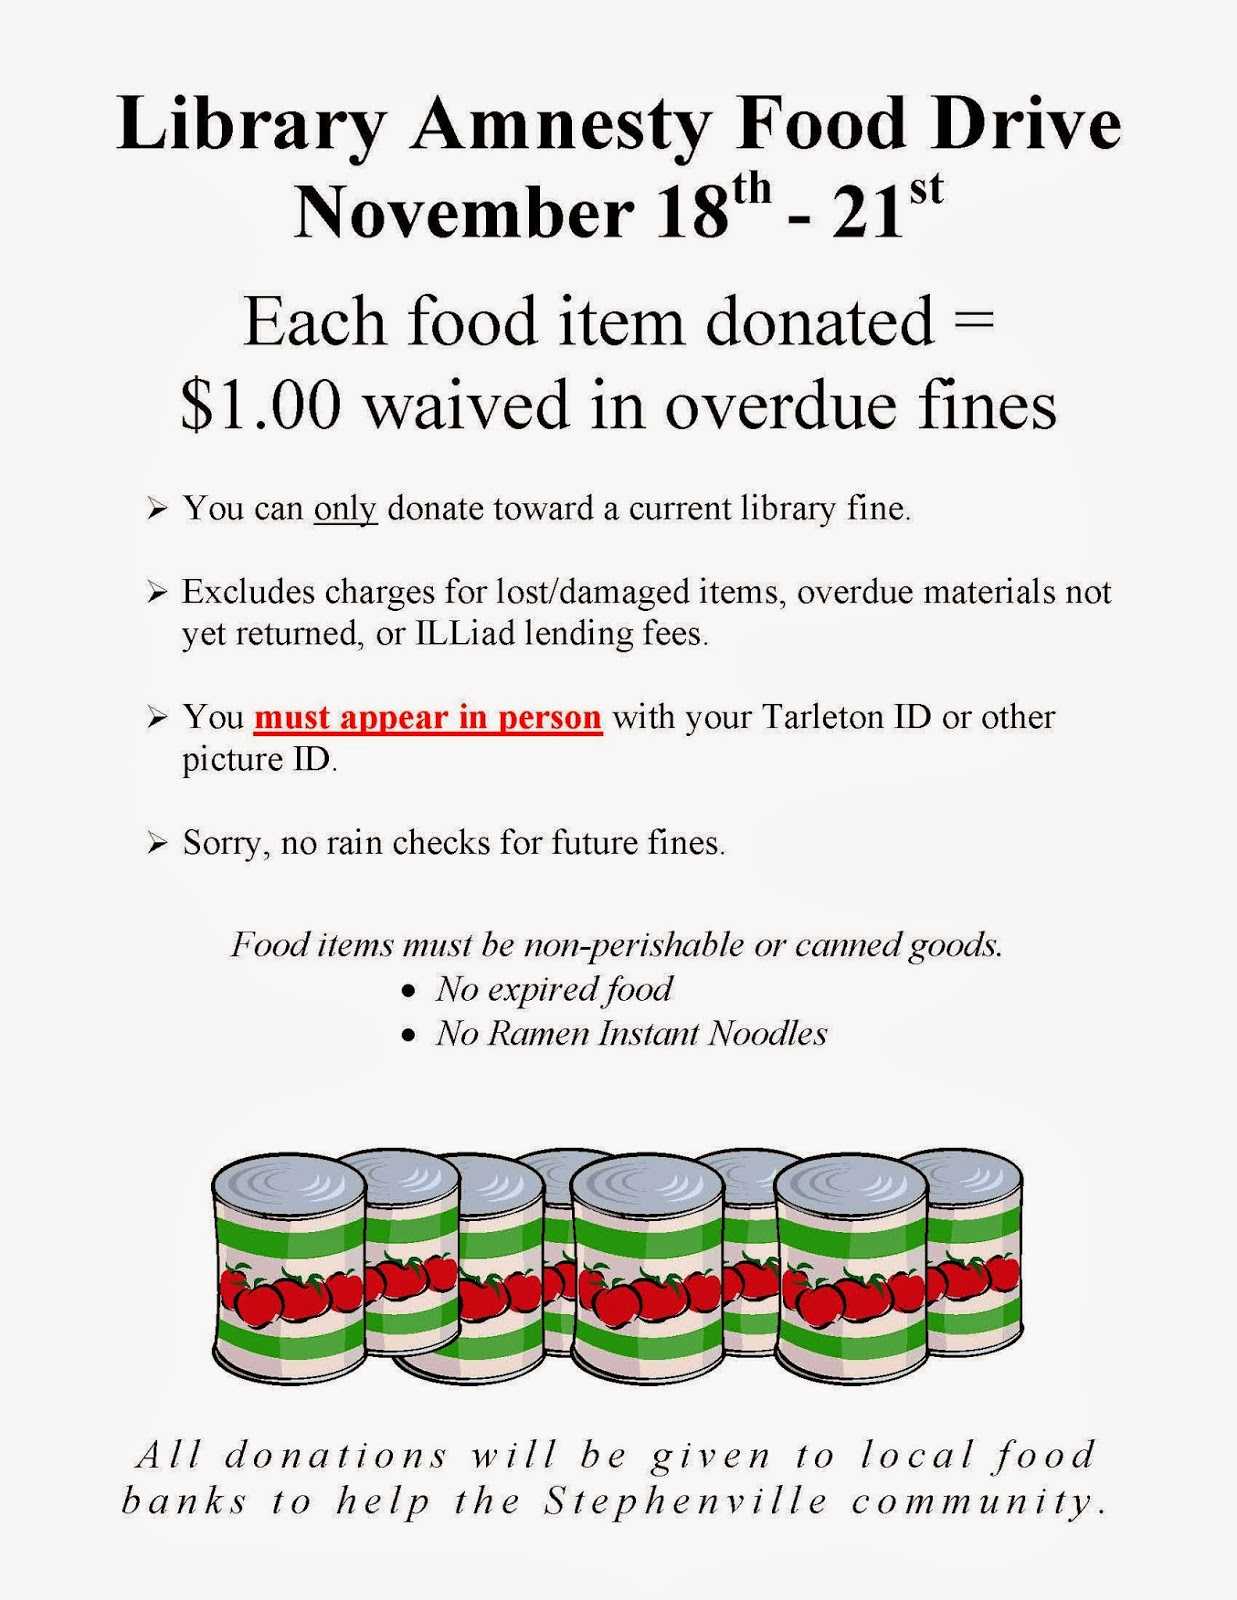 Thanksgiving food drive flyer templates library amnesty food drive